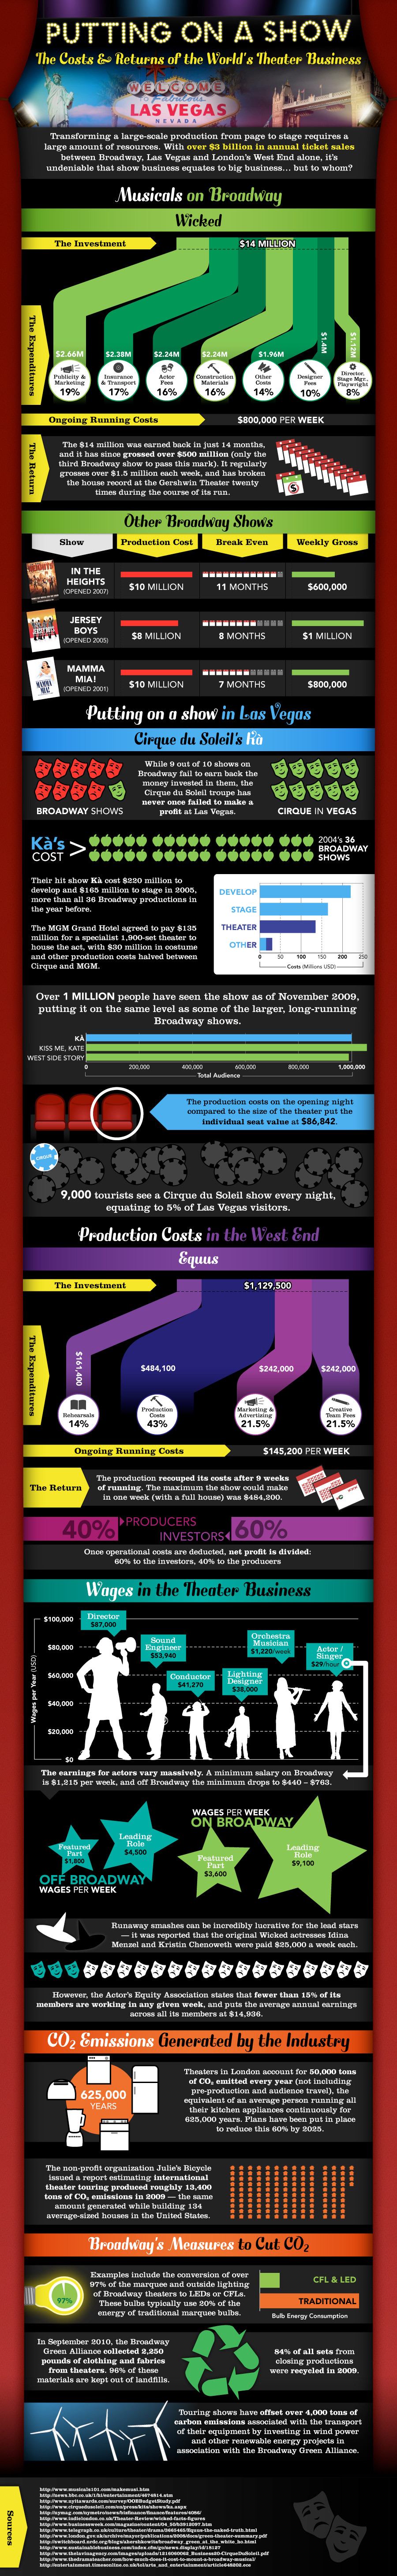 the-costs-and-returns-of-the-worlds-theater-business_502918fb4032f